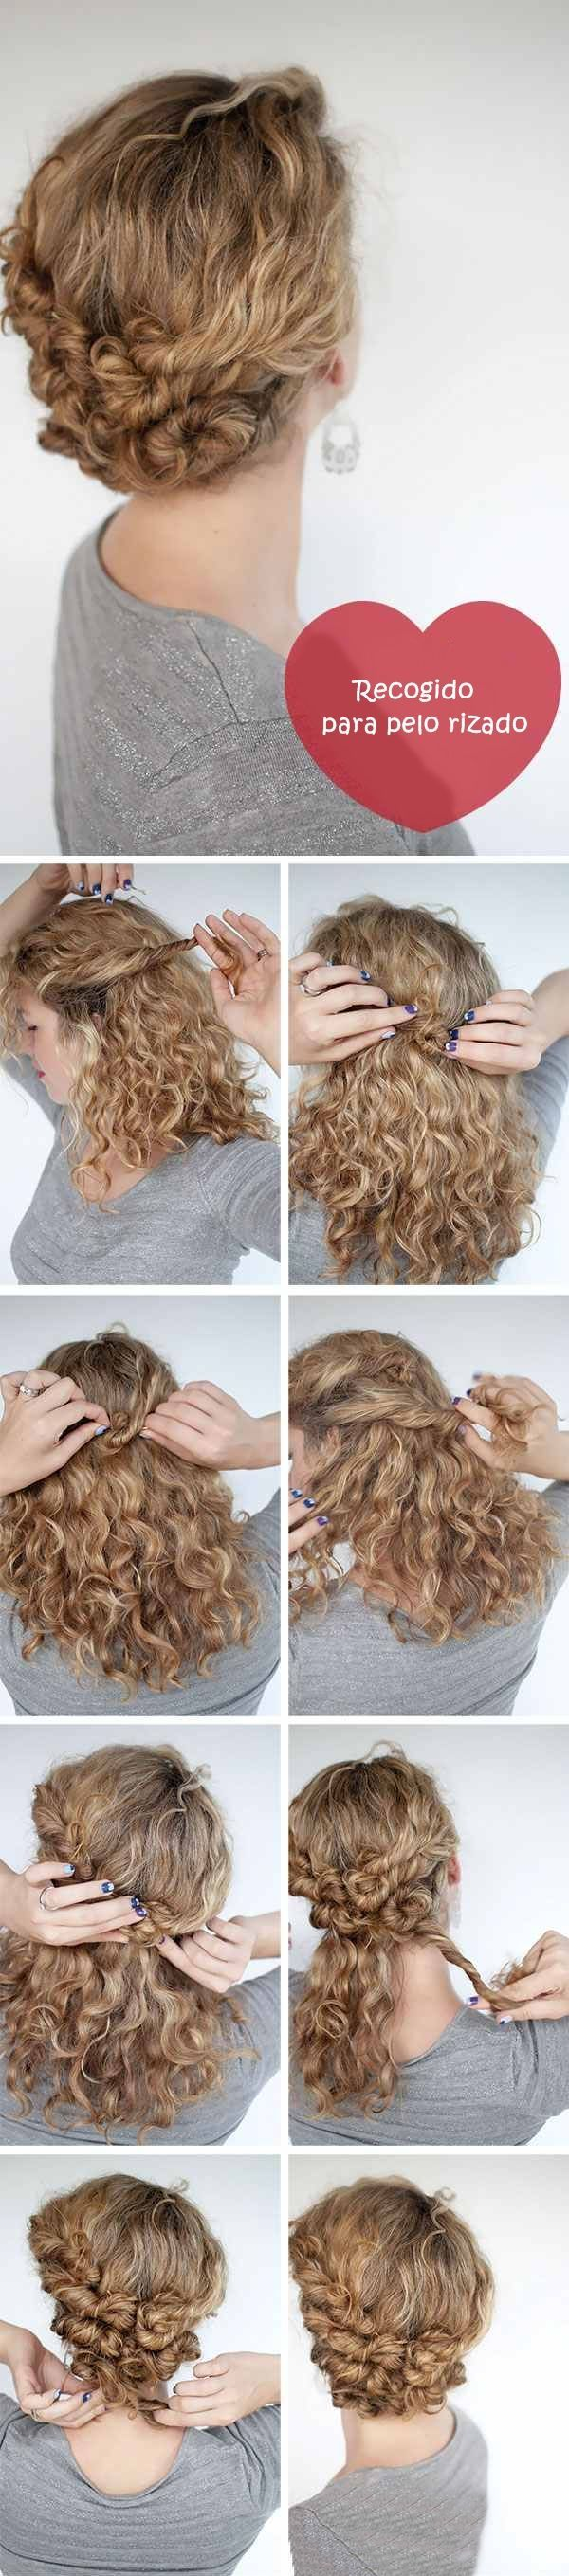 hairstyles for curly hair!